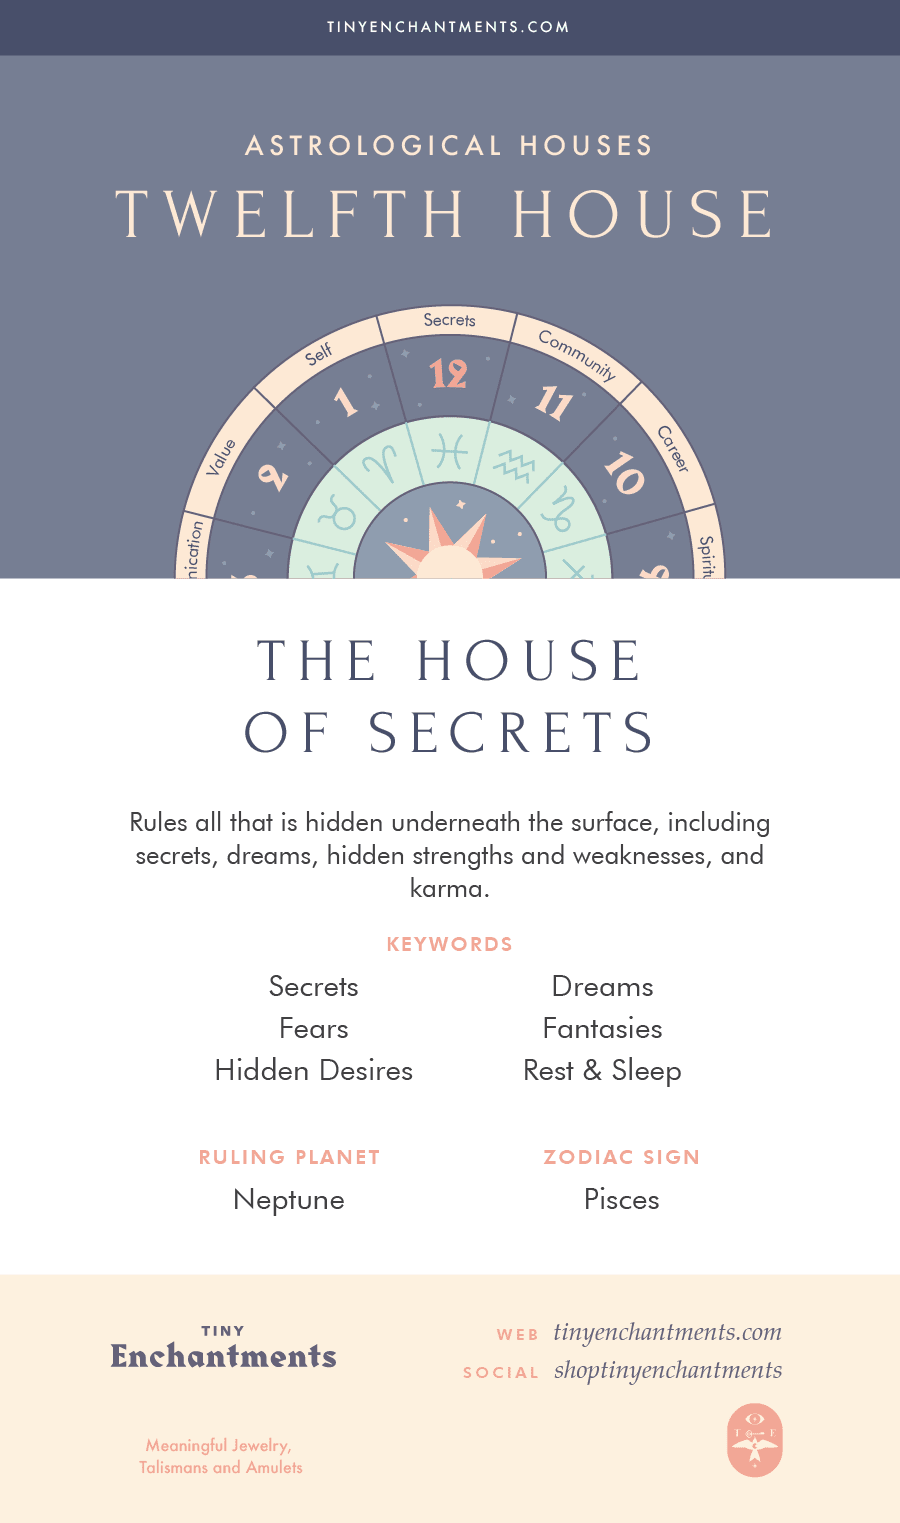 The Twelfth House - The House of Secrets - 12th House in Astrology, Meaning, Ruling Planets, Ruling Zodiac Signs